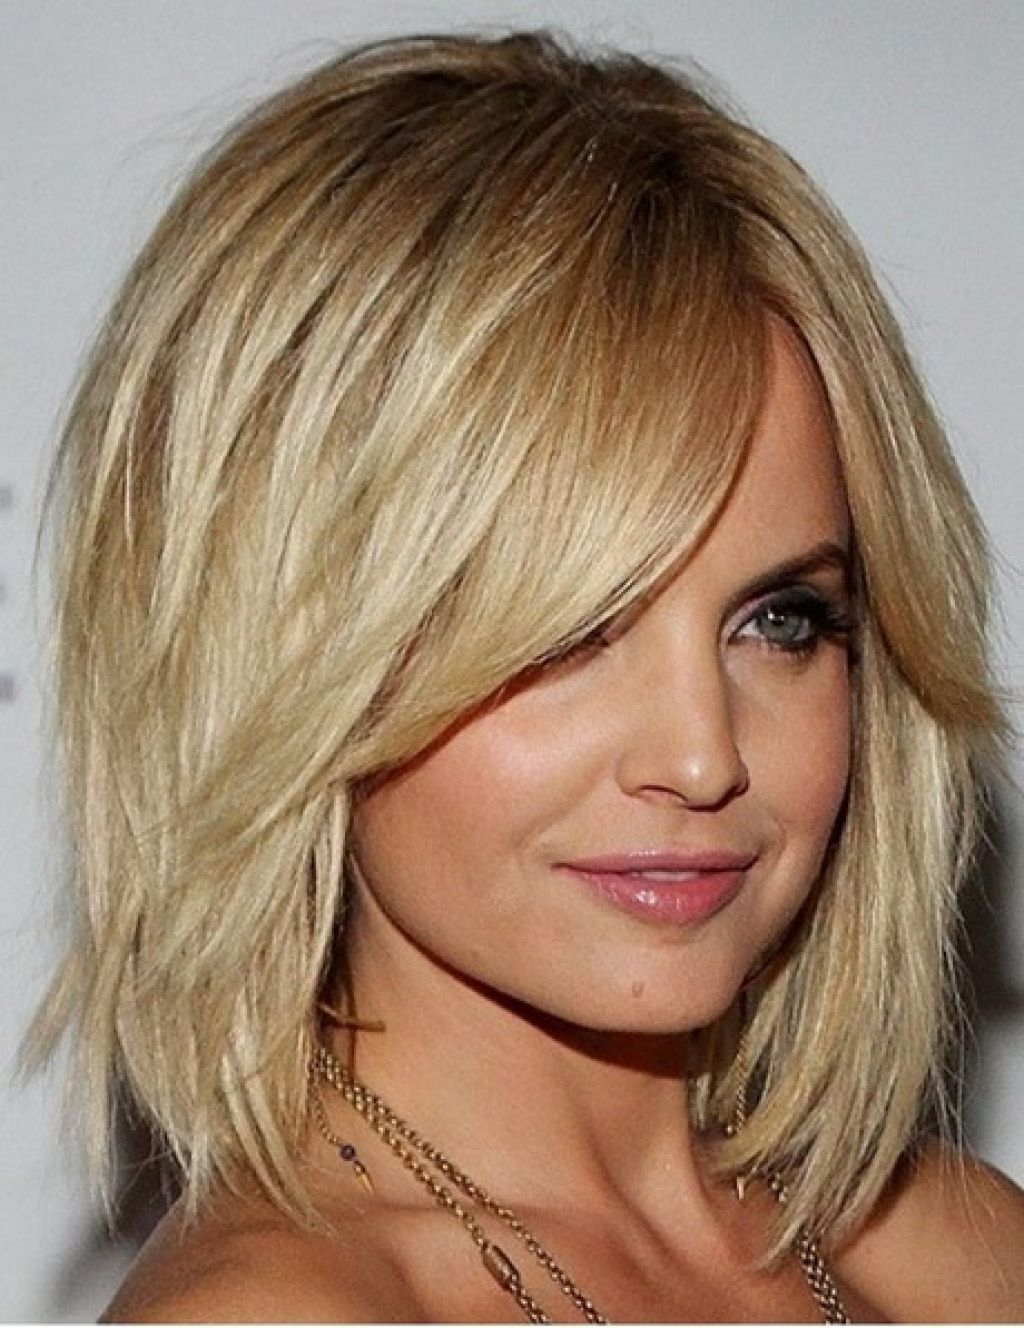 Hair Cuts : Mid Length Haircuts For Fine Hair Choppy Medium Ideas Regarding Popular Choppy Medium Haircuts For Fine Hair (View 10 of 20)